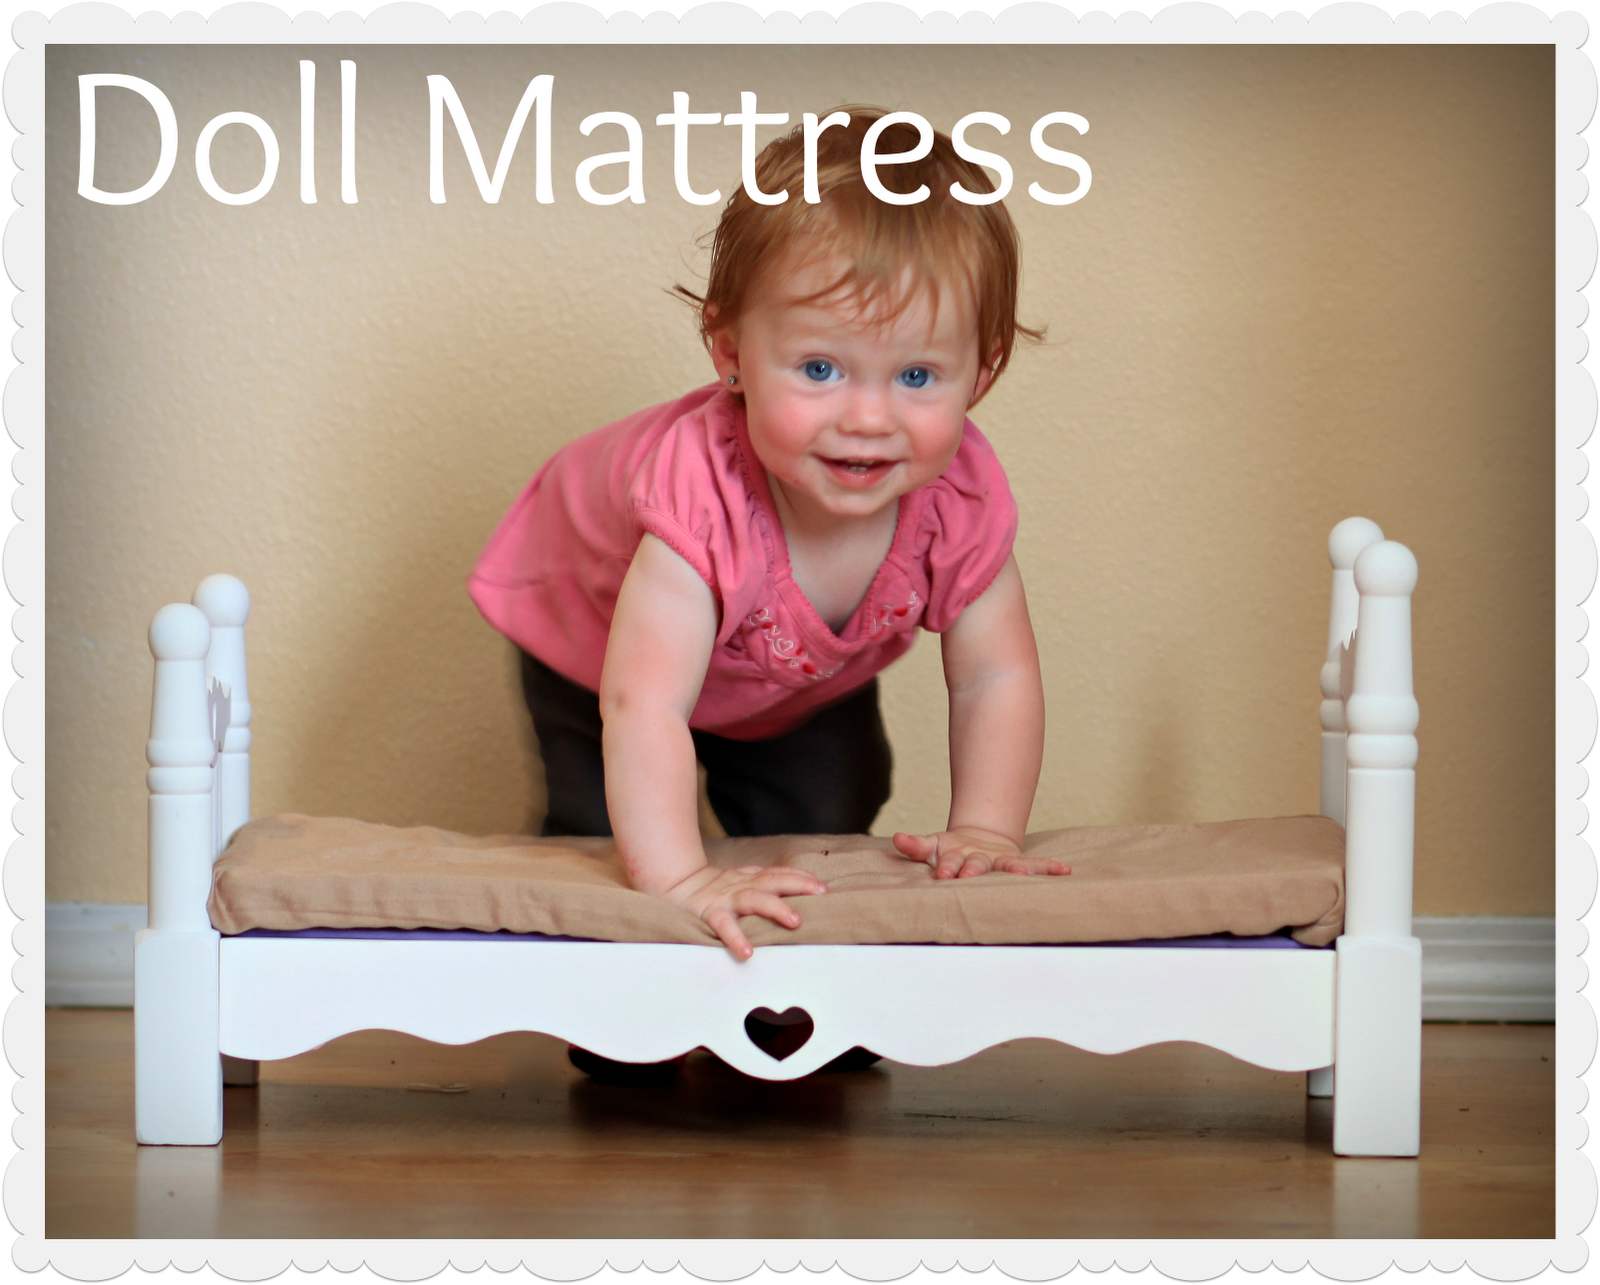 Doll bed mattress tutorial.  This makes a great photography prop.